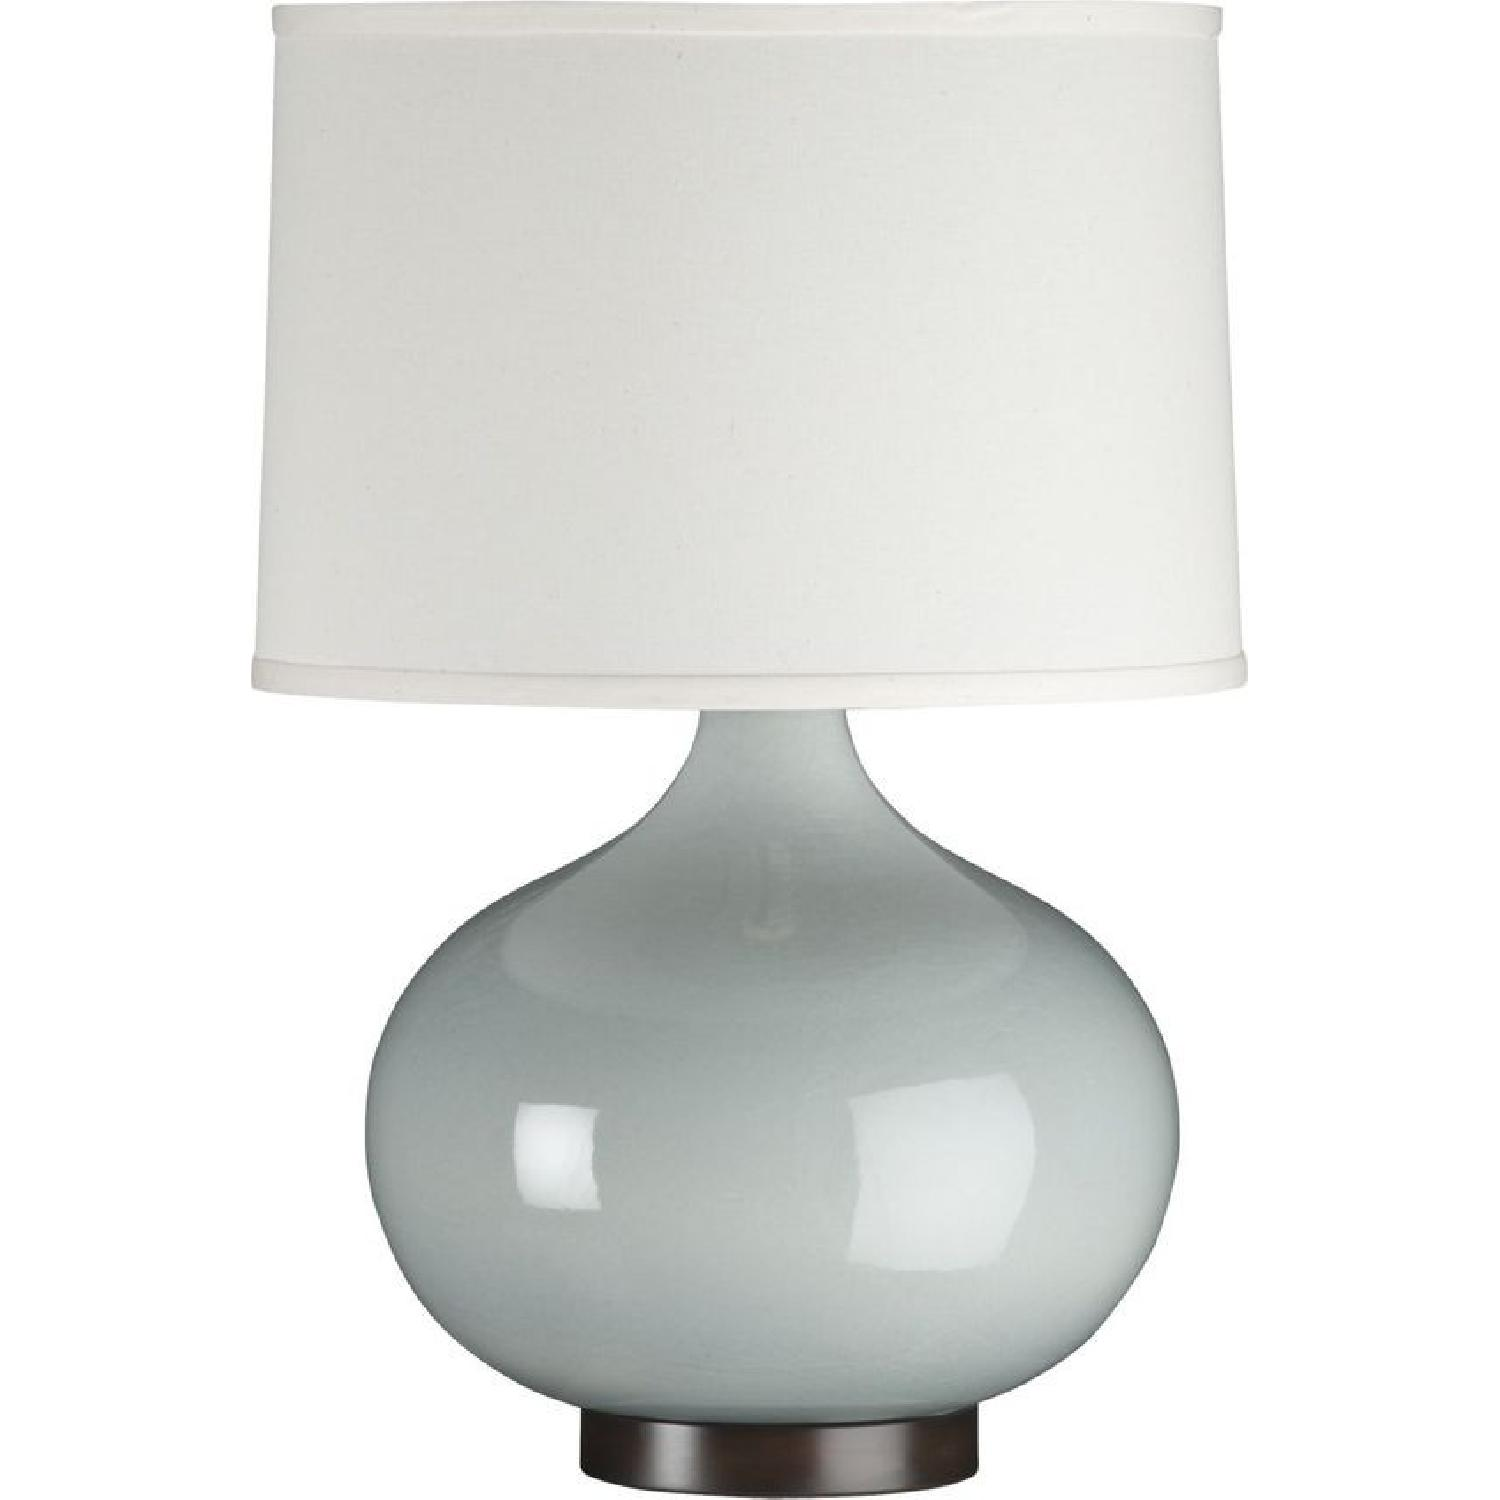 Crate & Barrel Merie Table Lamps (set of 2) - image-4